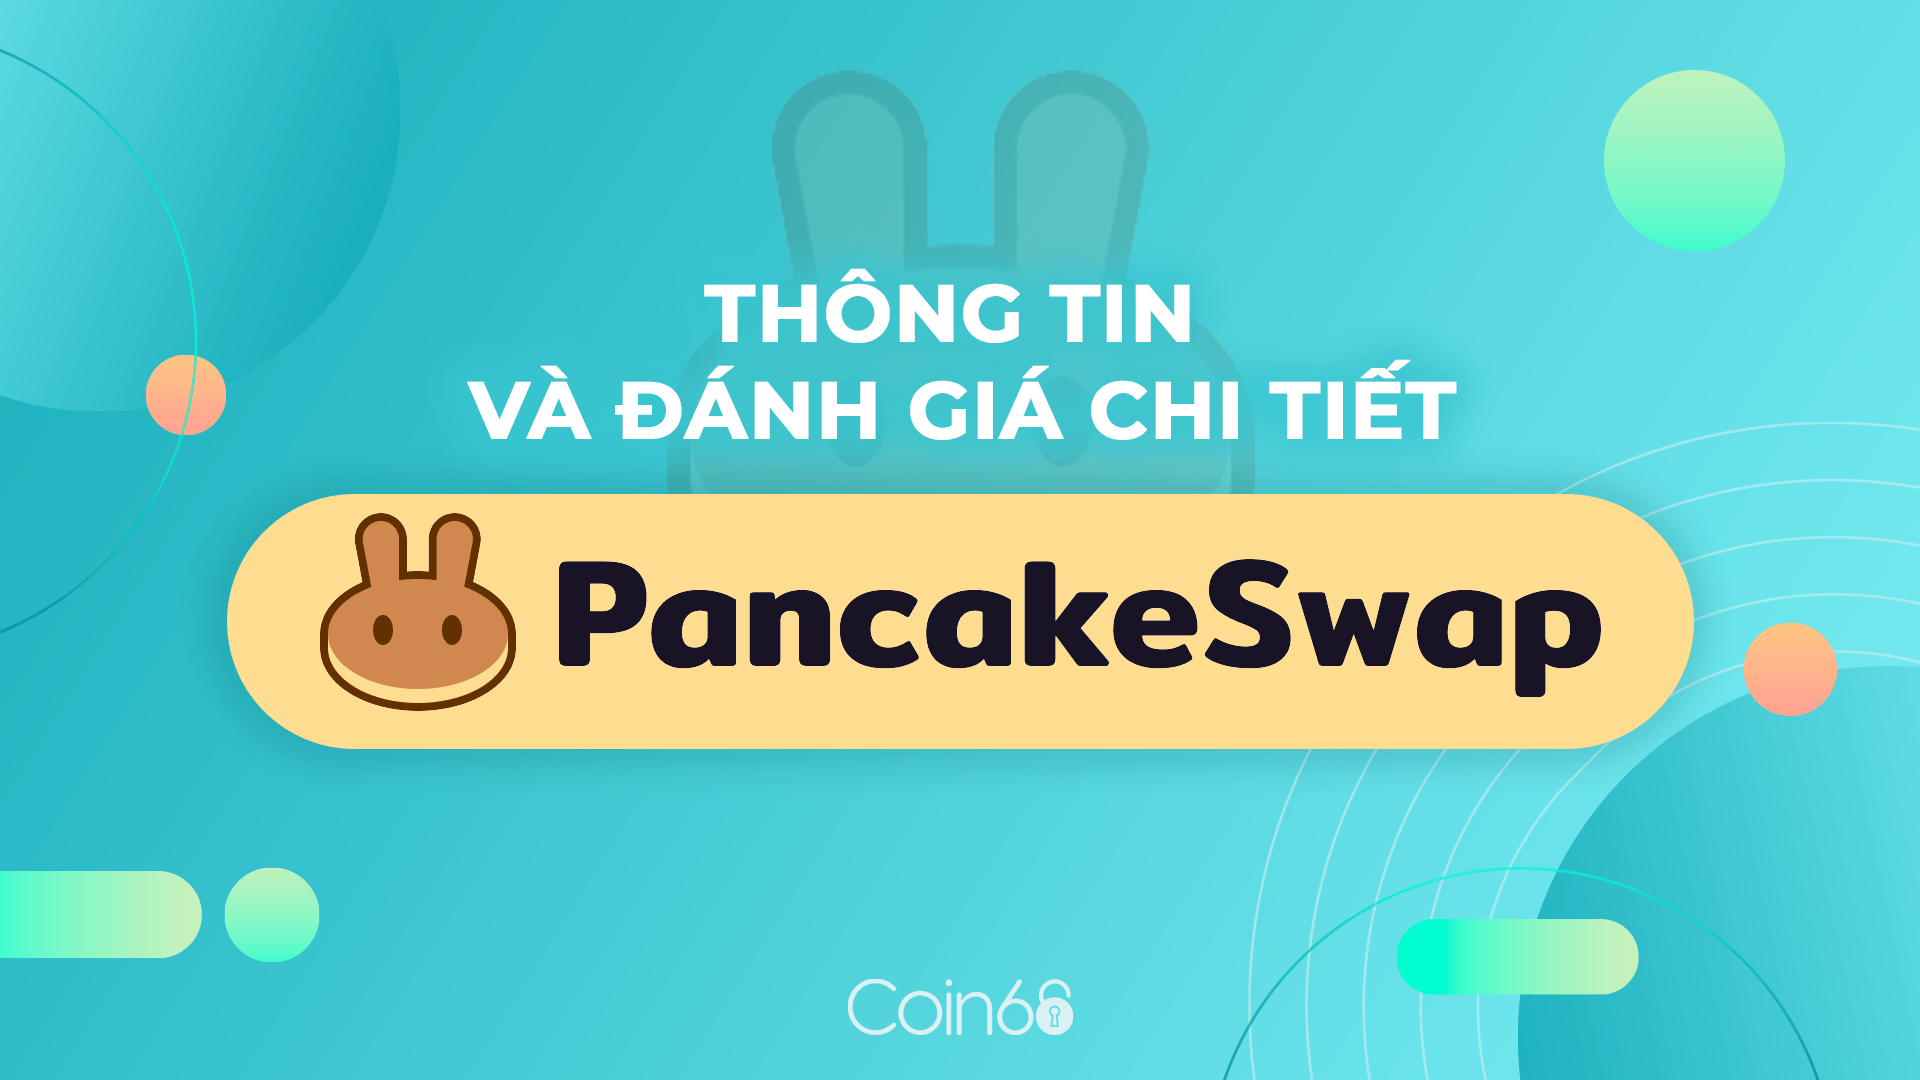 What is PancakeSwap?  Top 1 On BSC - Guide to Farming And Staking Cake On PancakeSwap